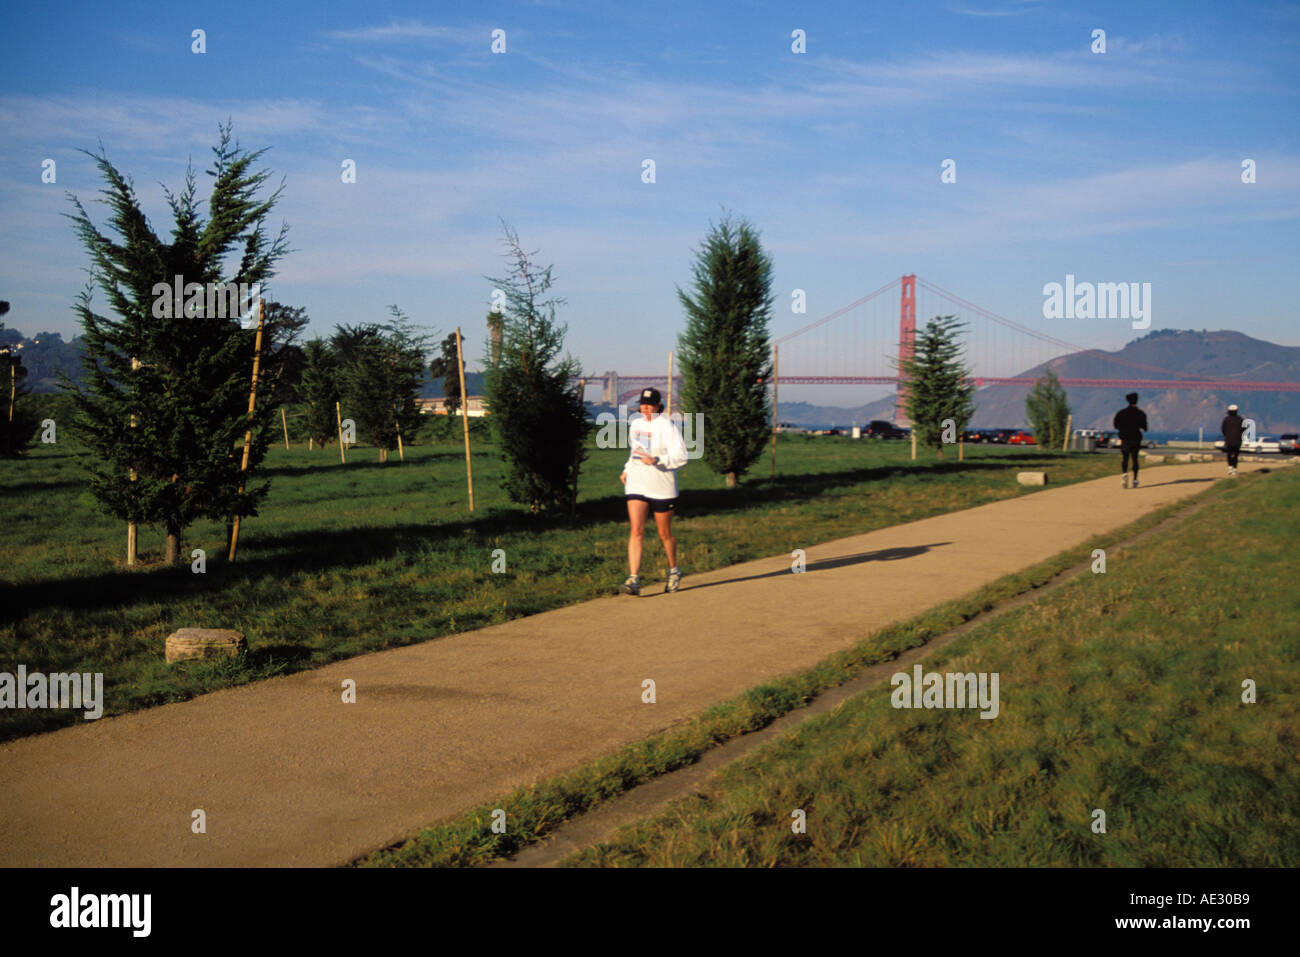 California, San Francisco, GGNRA, Entrance Grove, Crissy Field - Stock Image